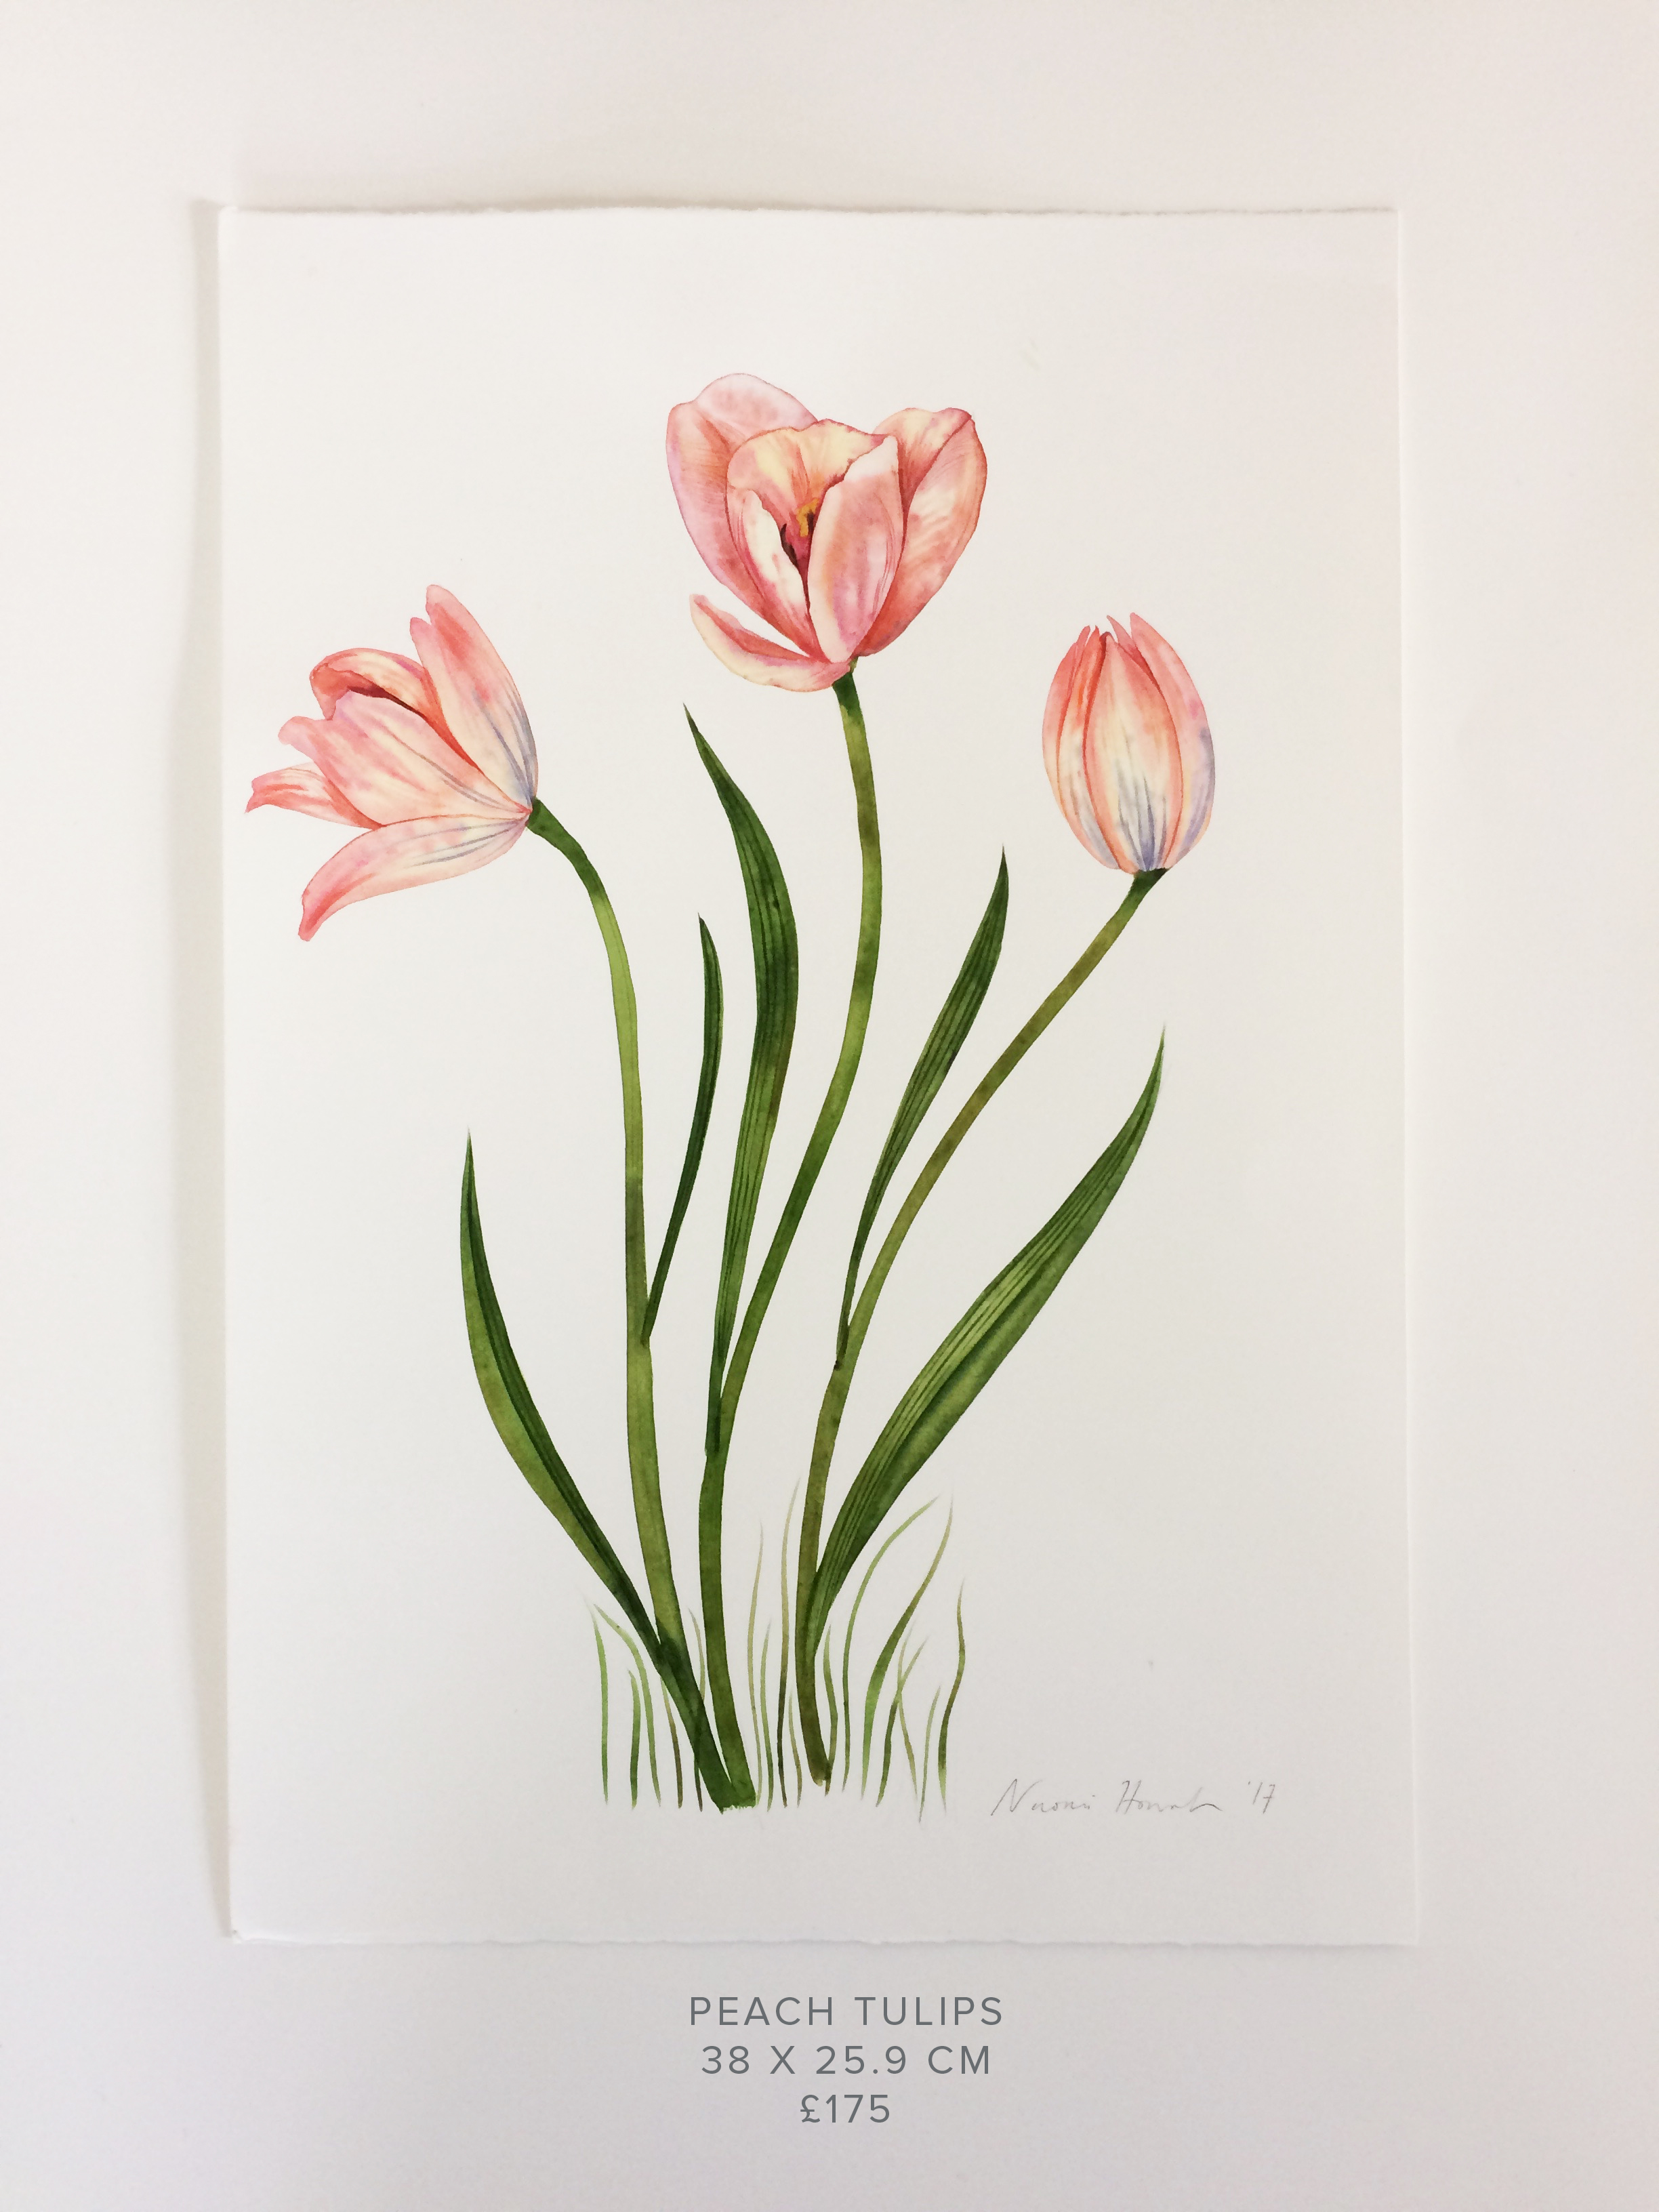 Peach Tulips PS.jpg